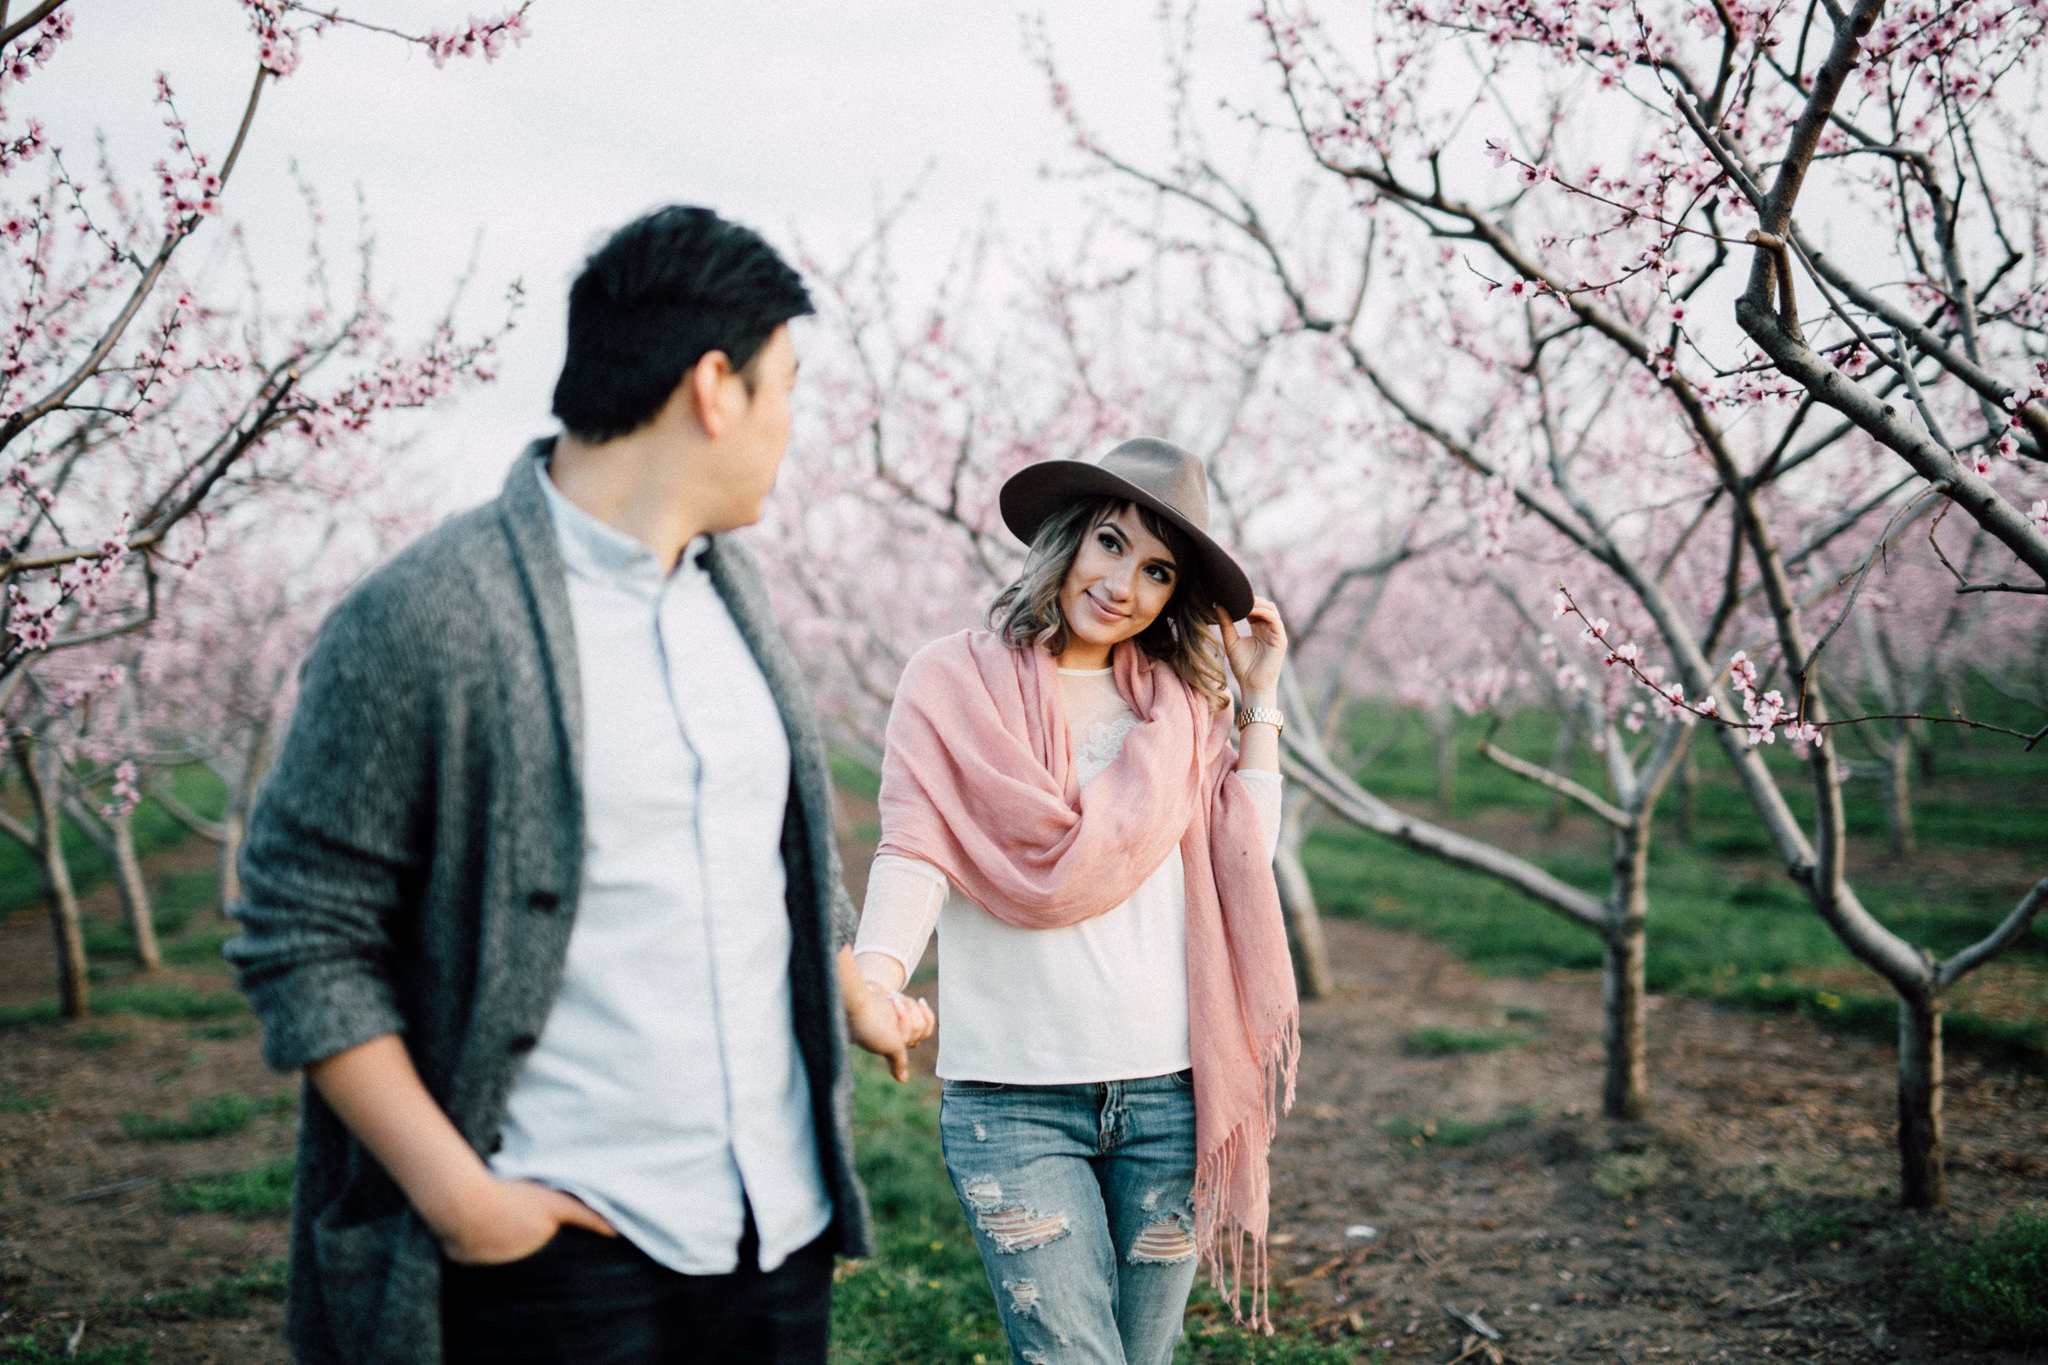 Niagara-Portrait-Session-Niagara-On-The-Lake-Cherry-Blossoms-photography-by-Simply-Lace-Photography-033.JPG